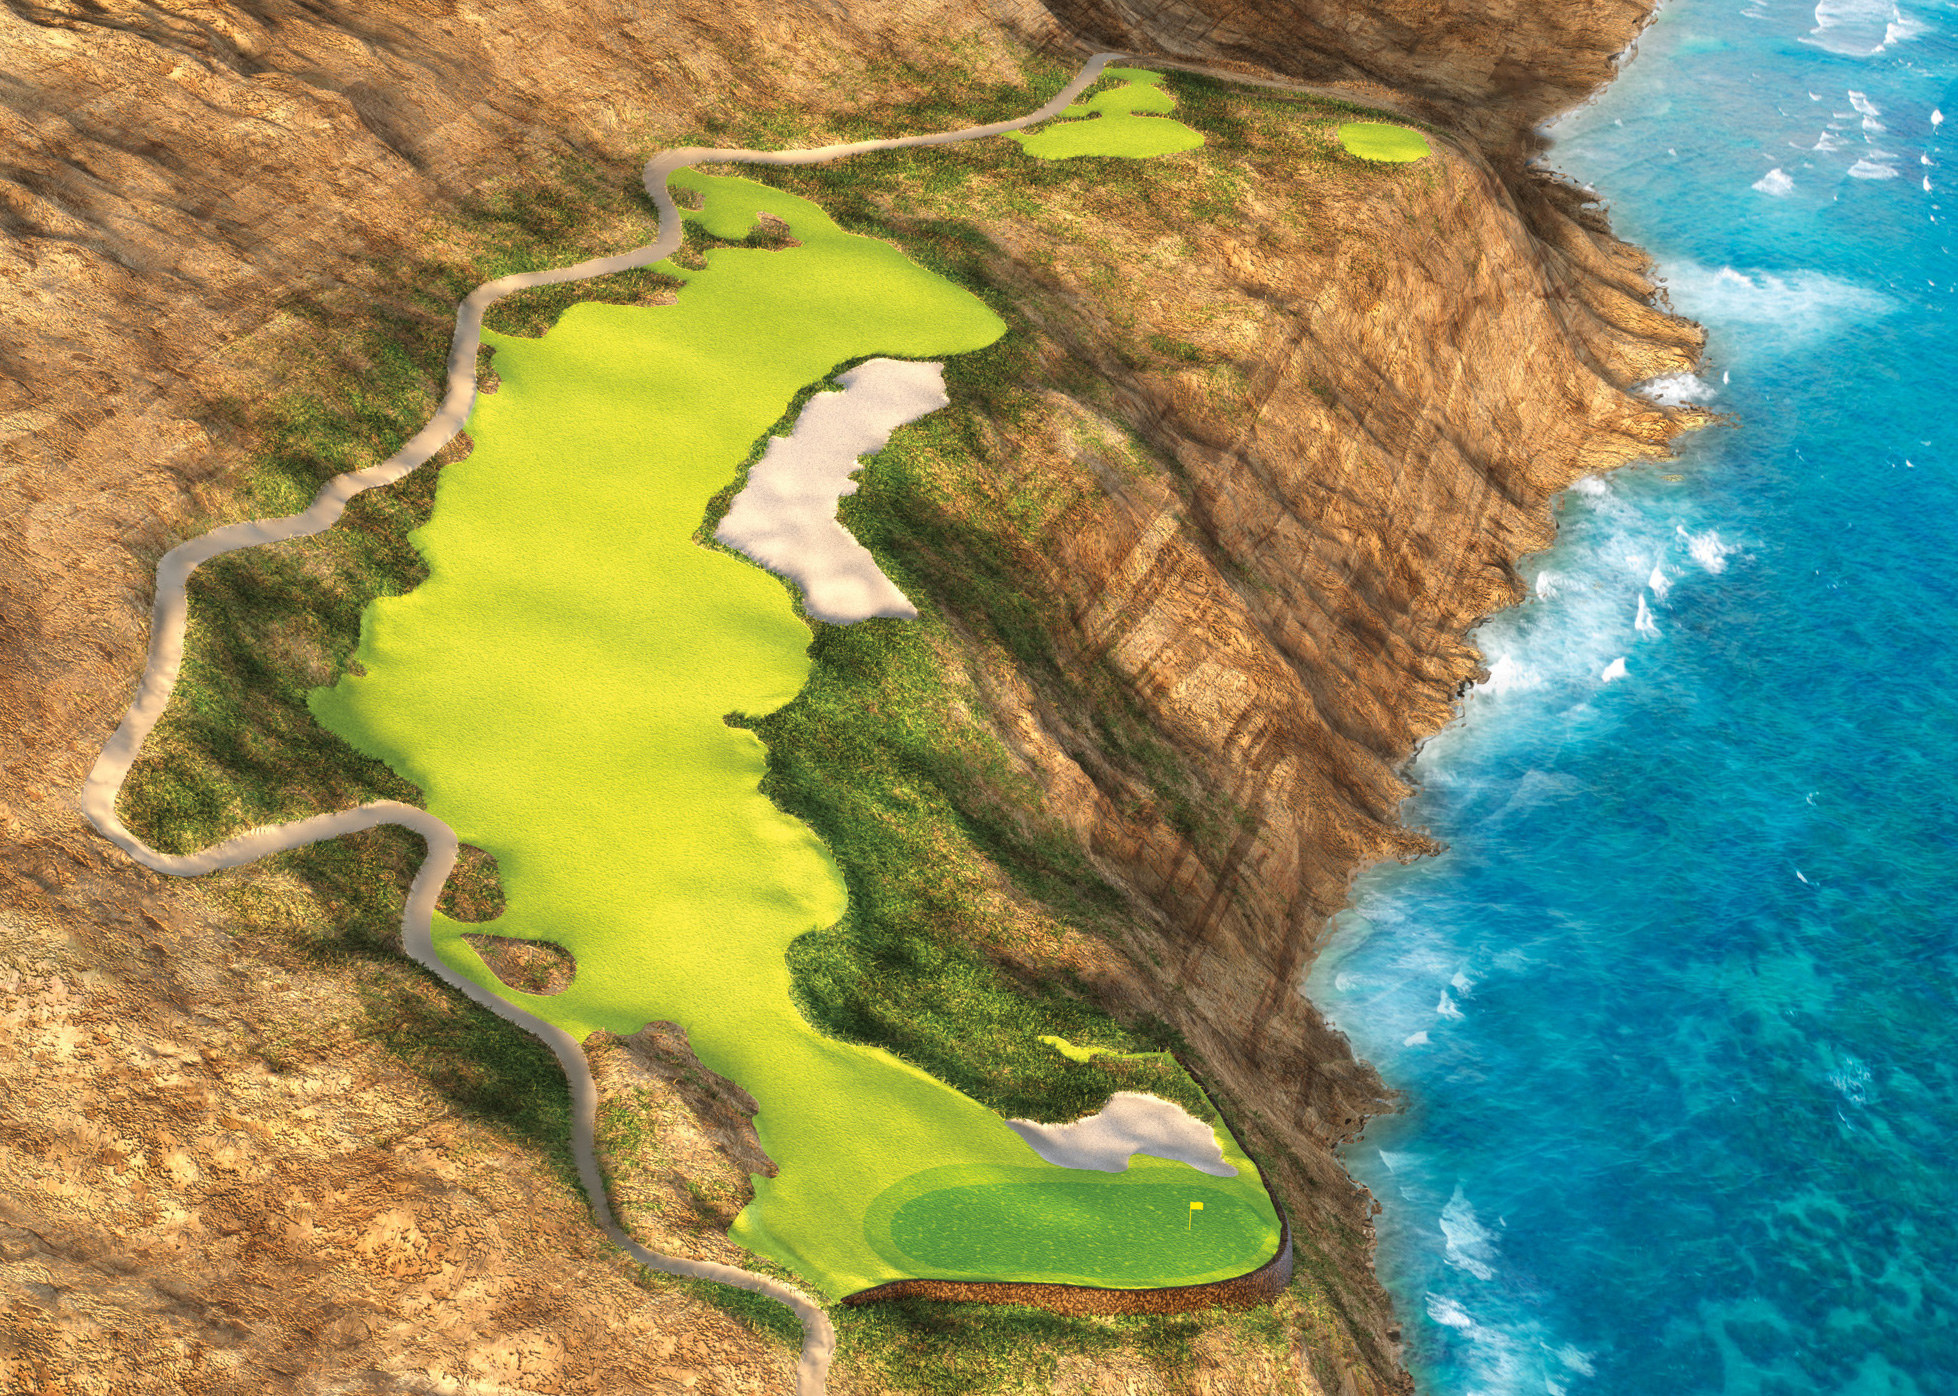 Nicklaus on how to play a Drivable Par 4